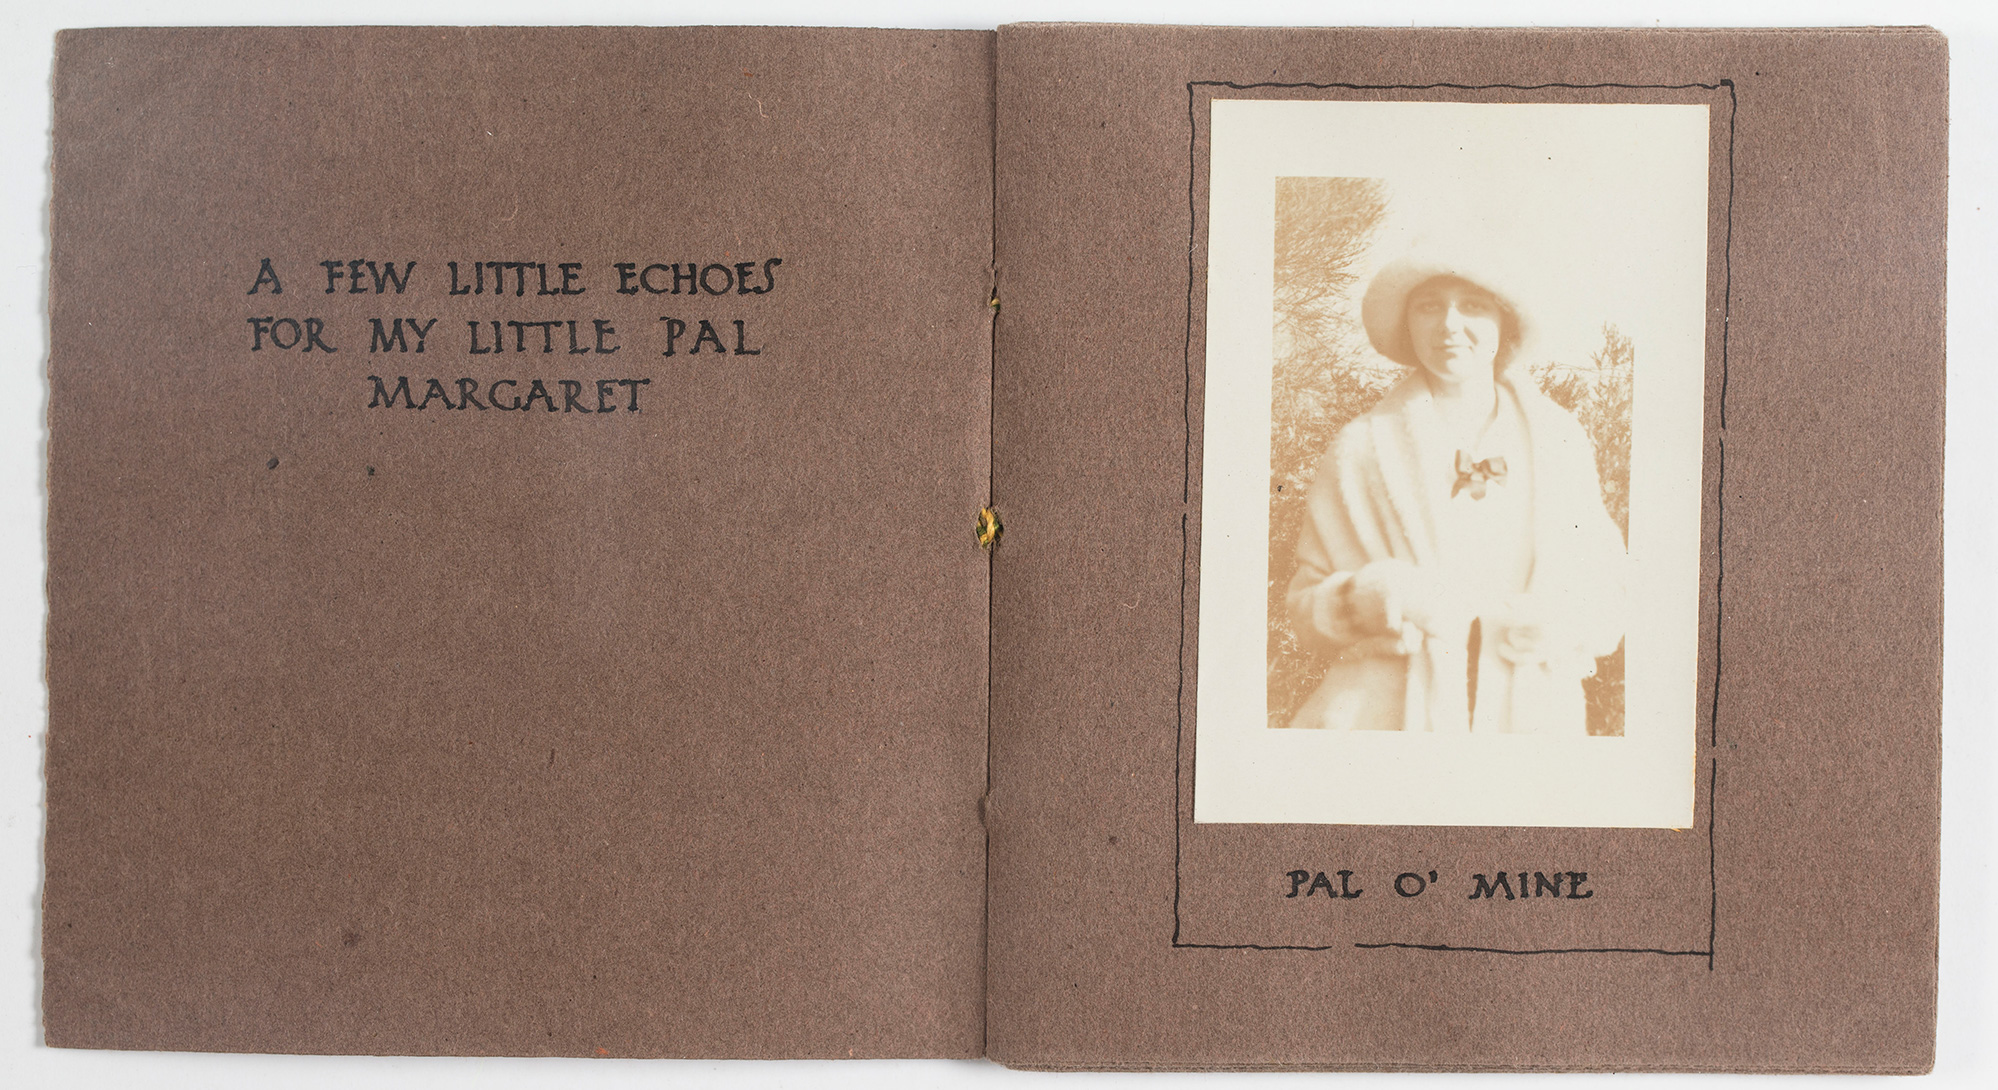 Hand-bound book open to a page with a photograph of a woman.